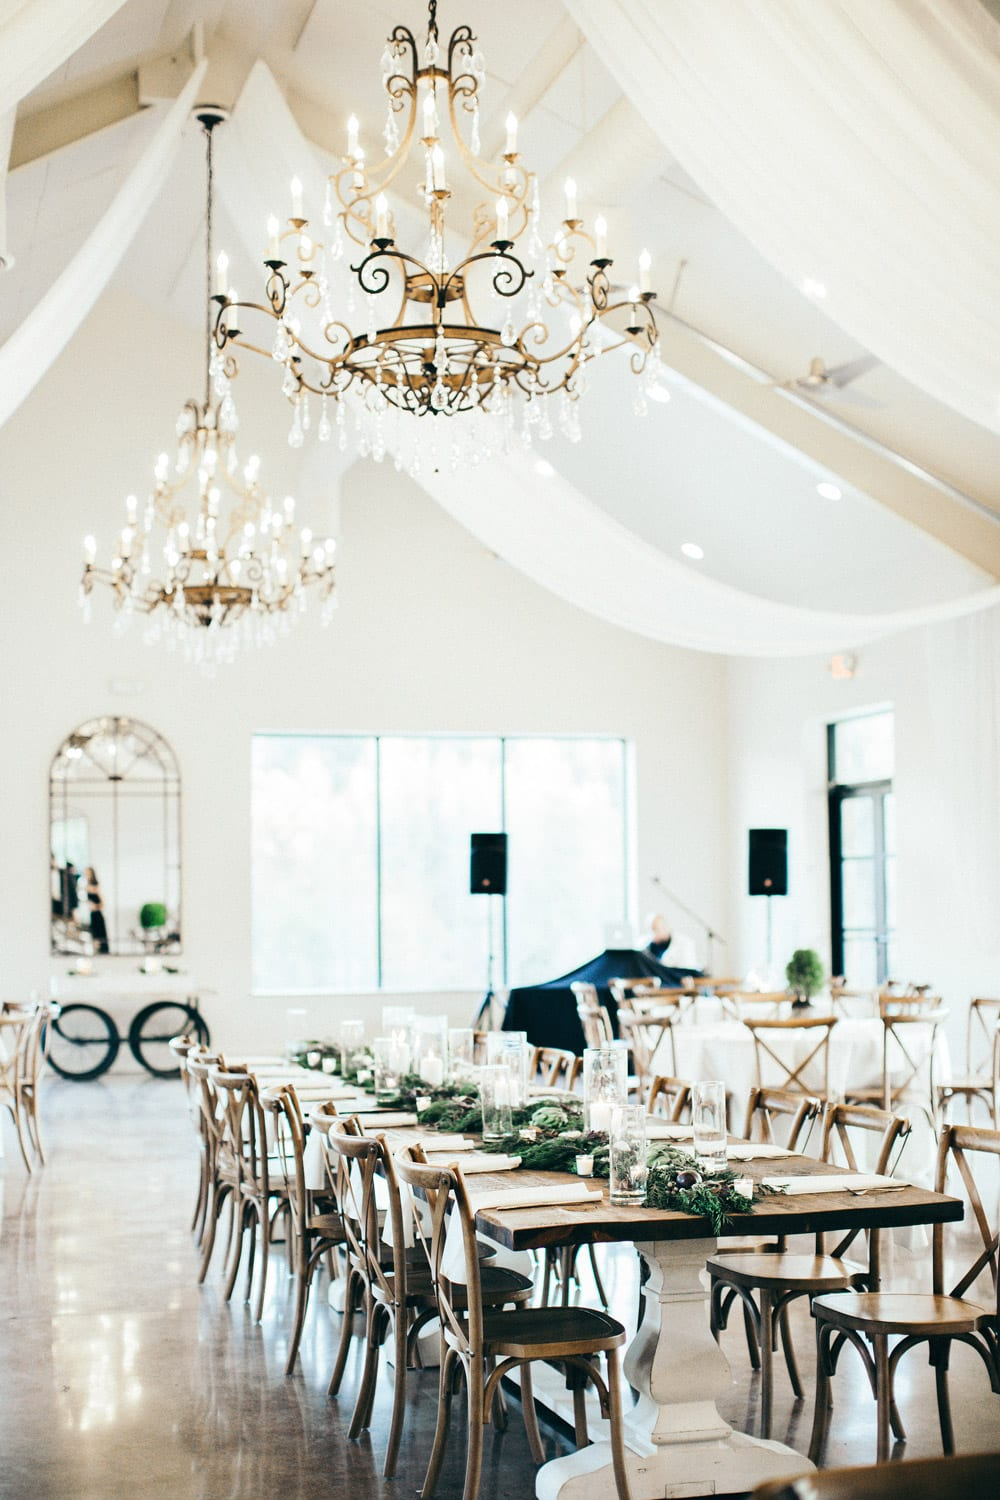 Reception hall with chandeliers